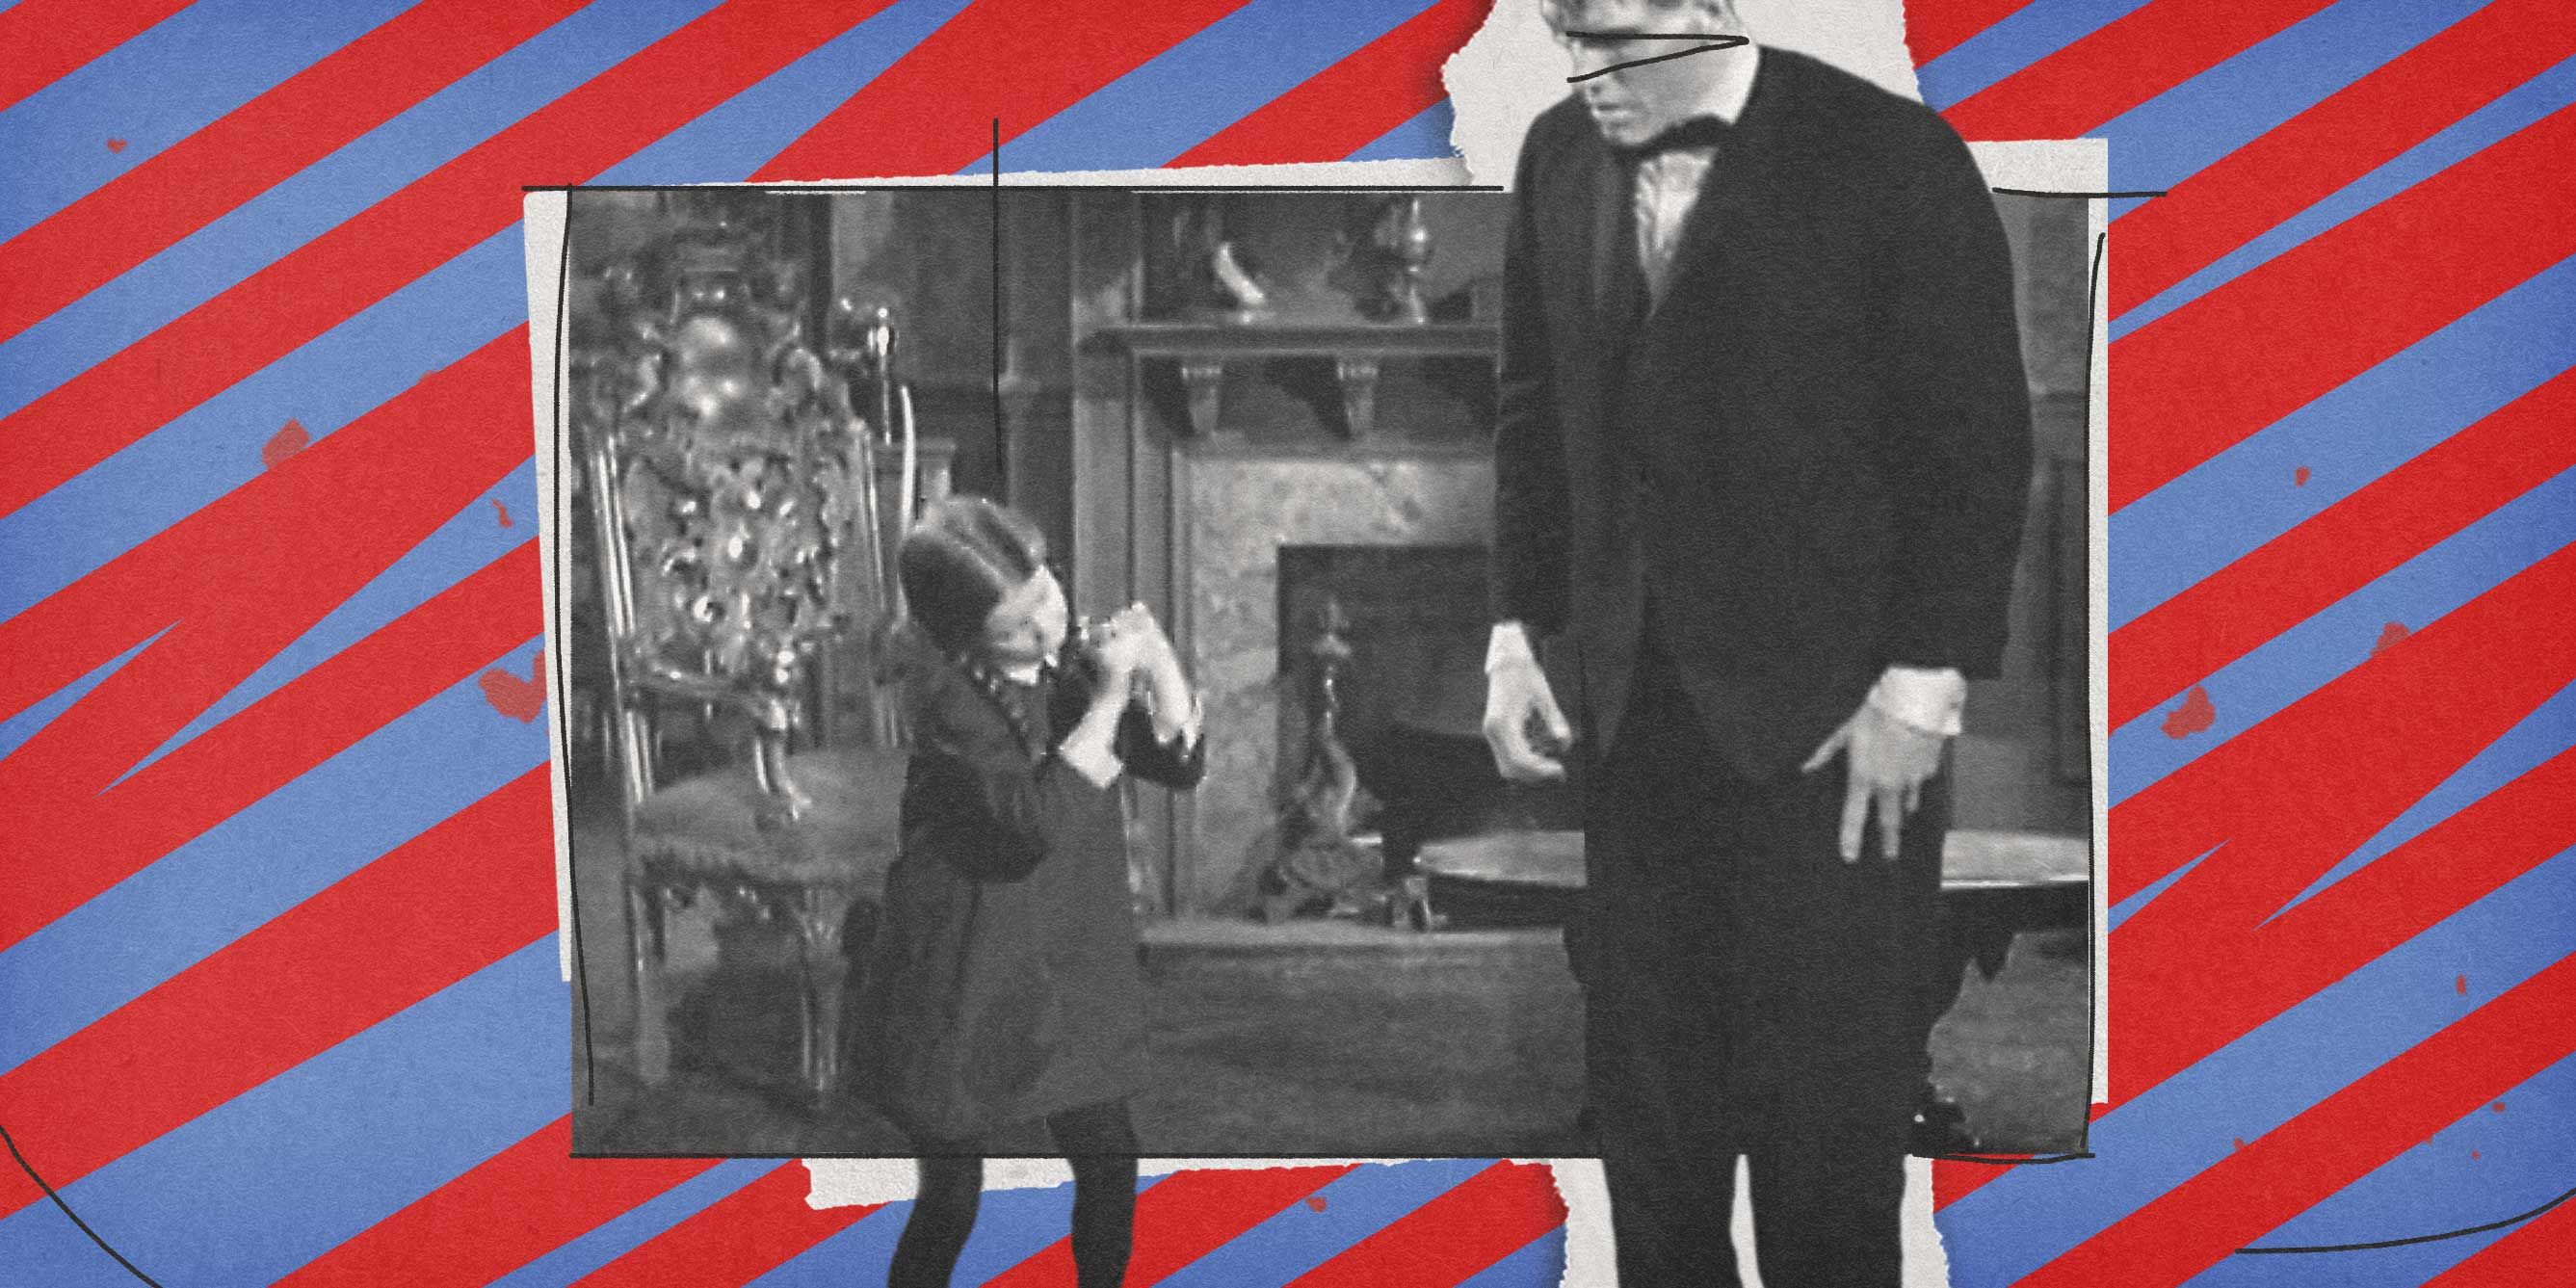 Wednesday Addams teaches Lurch to do the Droop